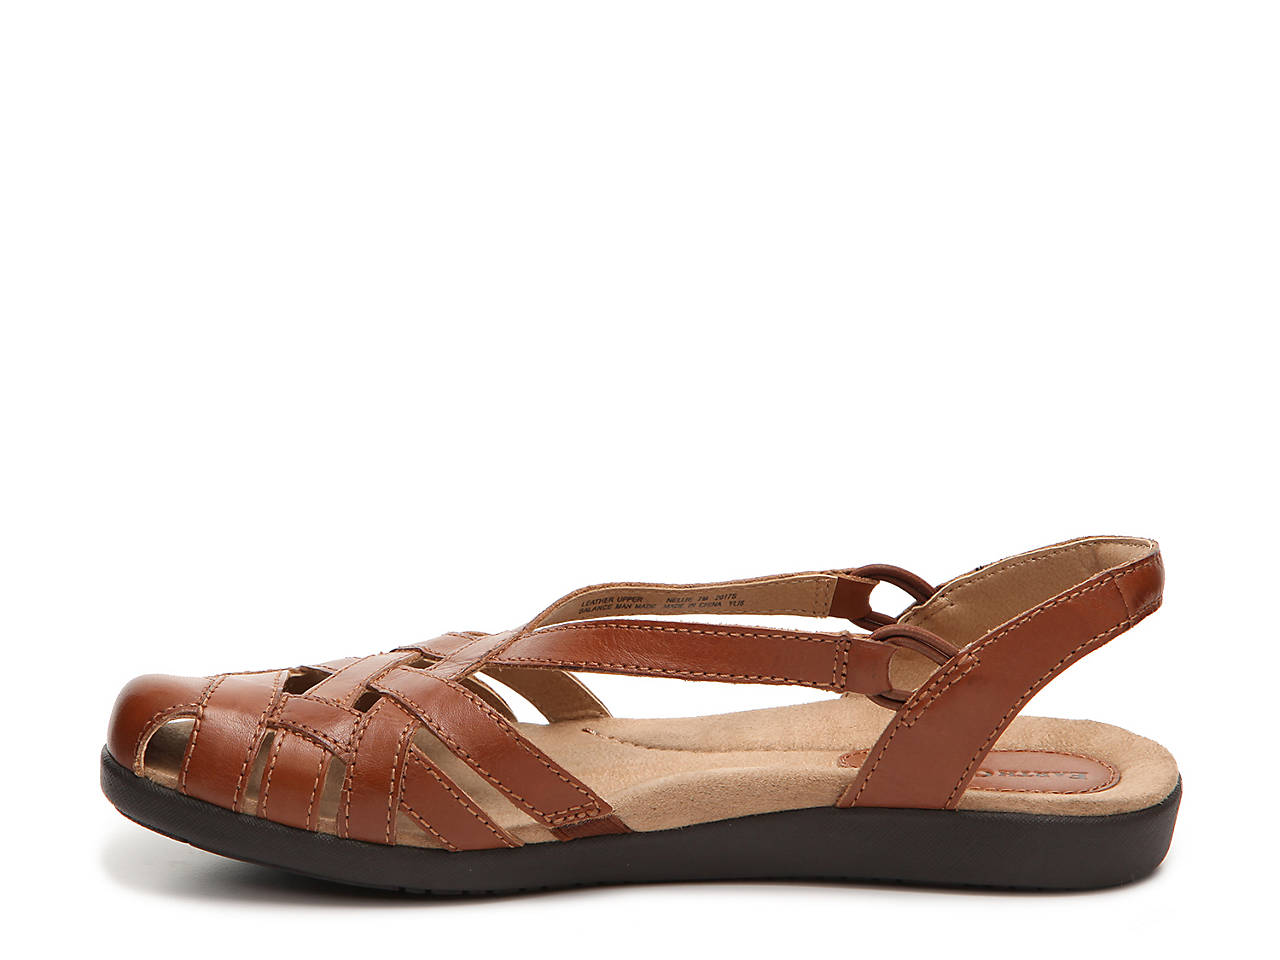 81806f6440cb Earth Origins Nellie Sandal Women s Shoes